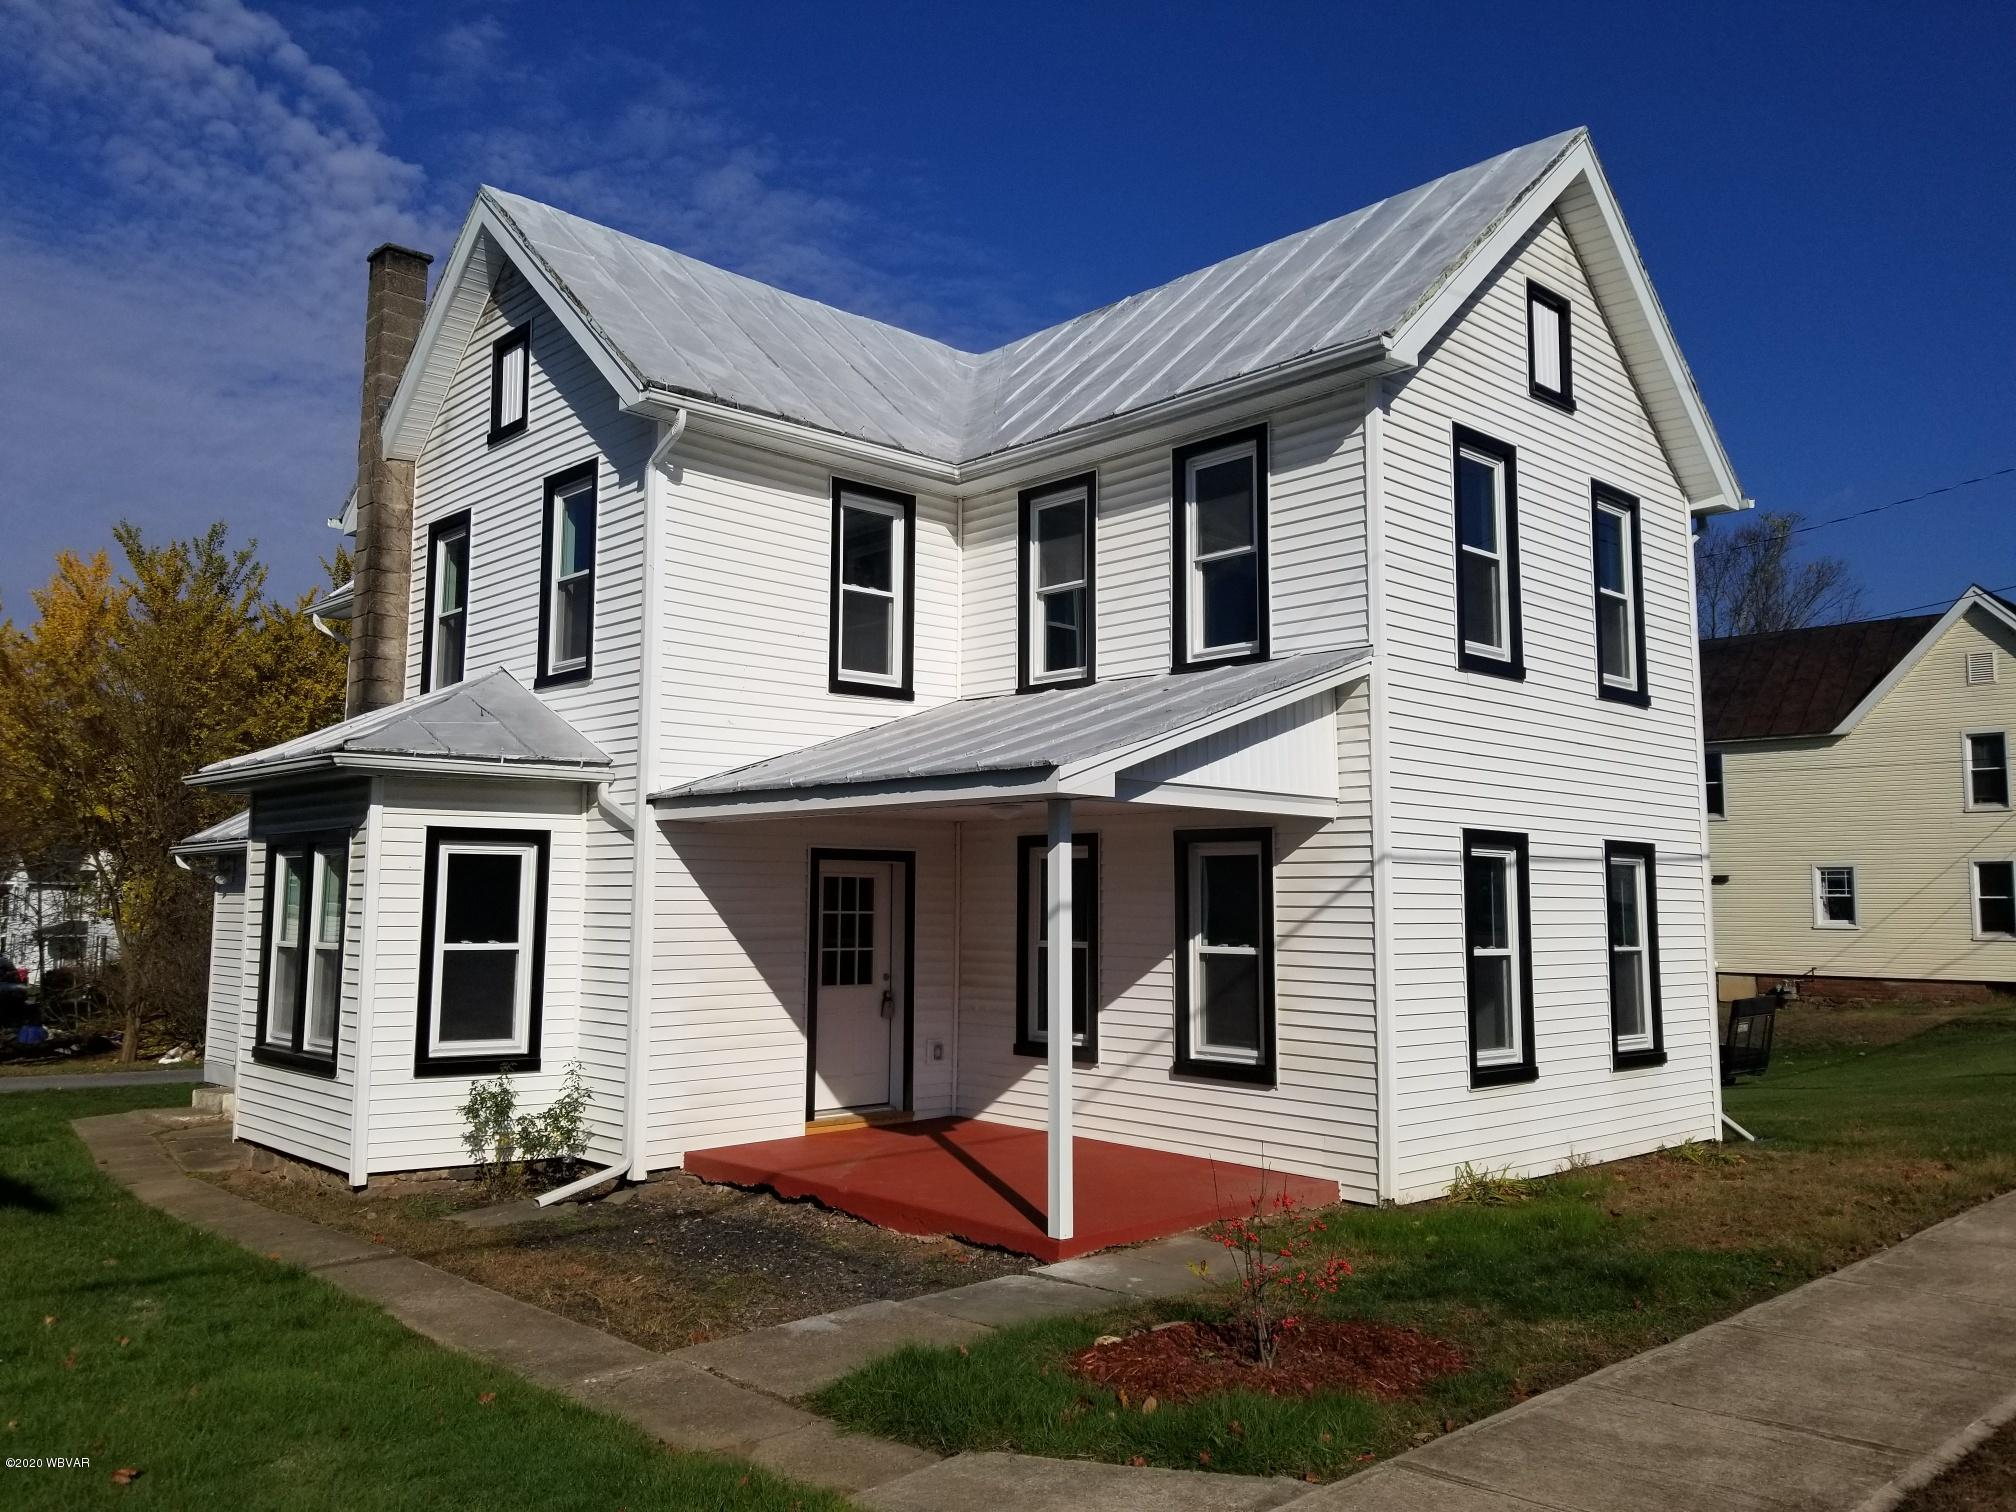 62 WAGNER AVENUE, Montgomery, PA 17752, 3 Bedrooms Bedrooms, ,2 BathroomsBathrooms,Residential,For sale,WAGNER,WB-91526